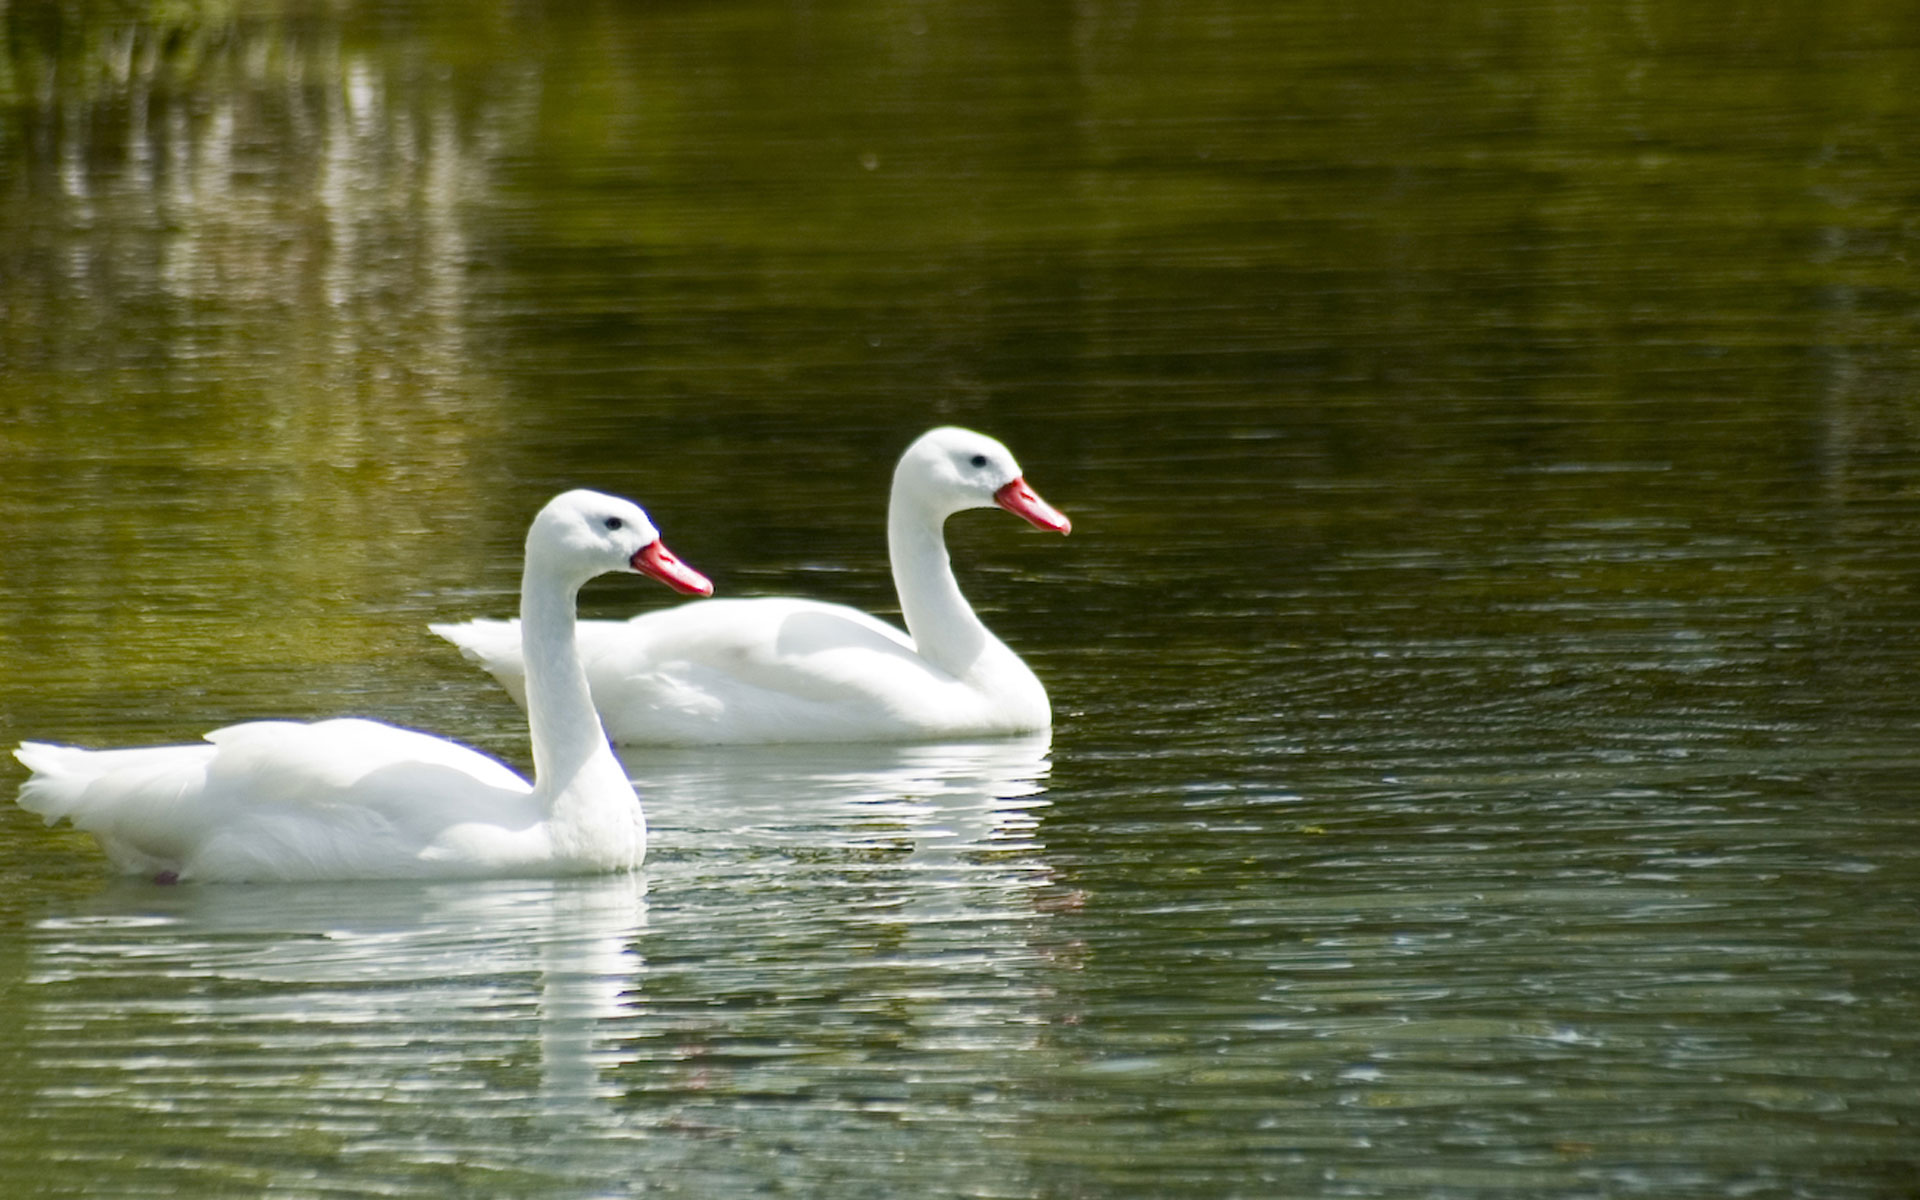 Two swans swimming photo